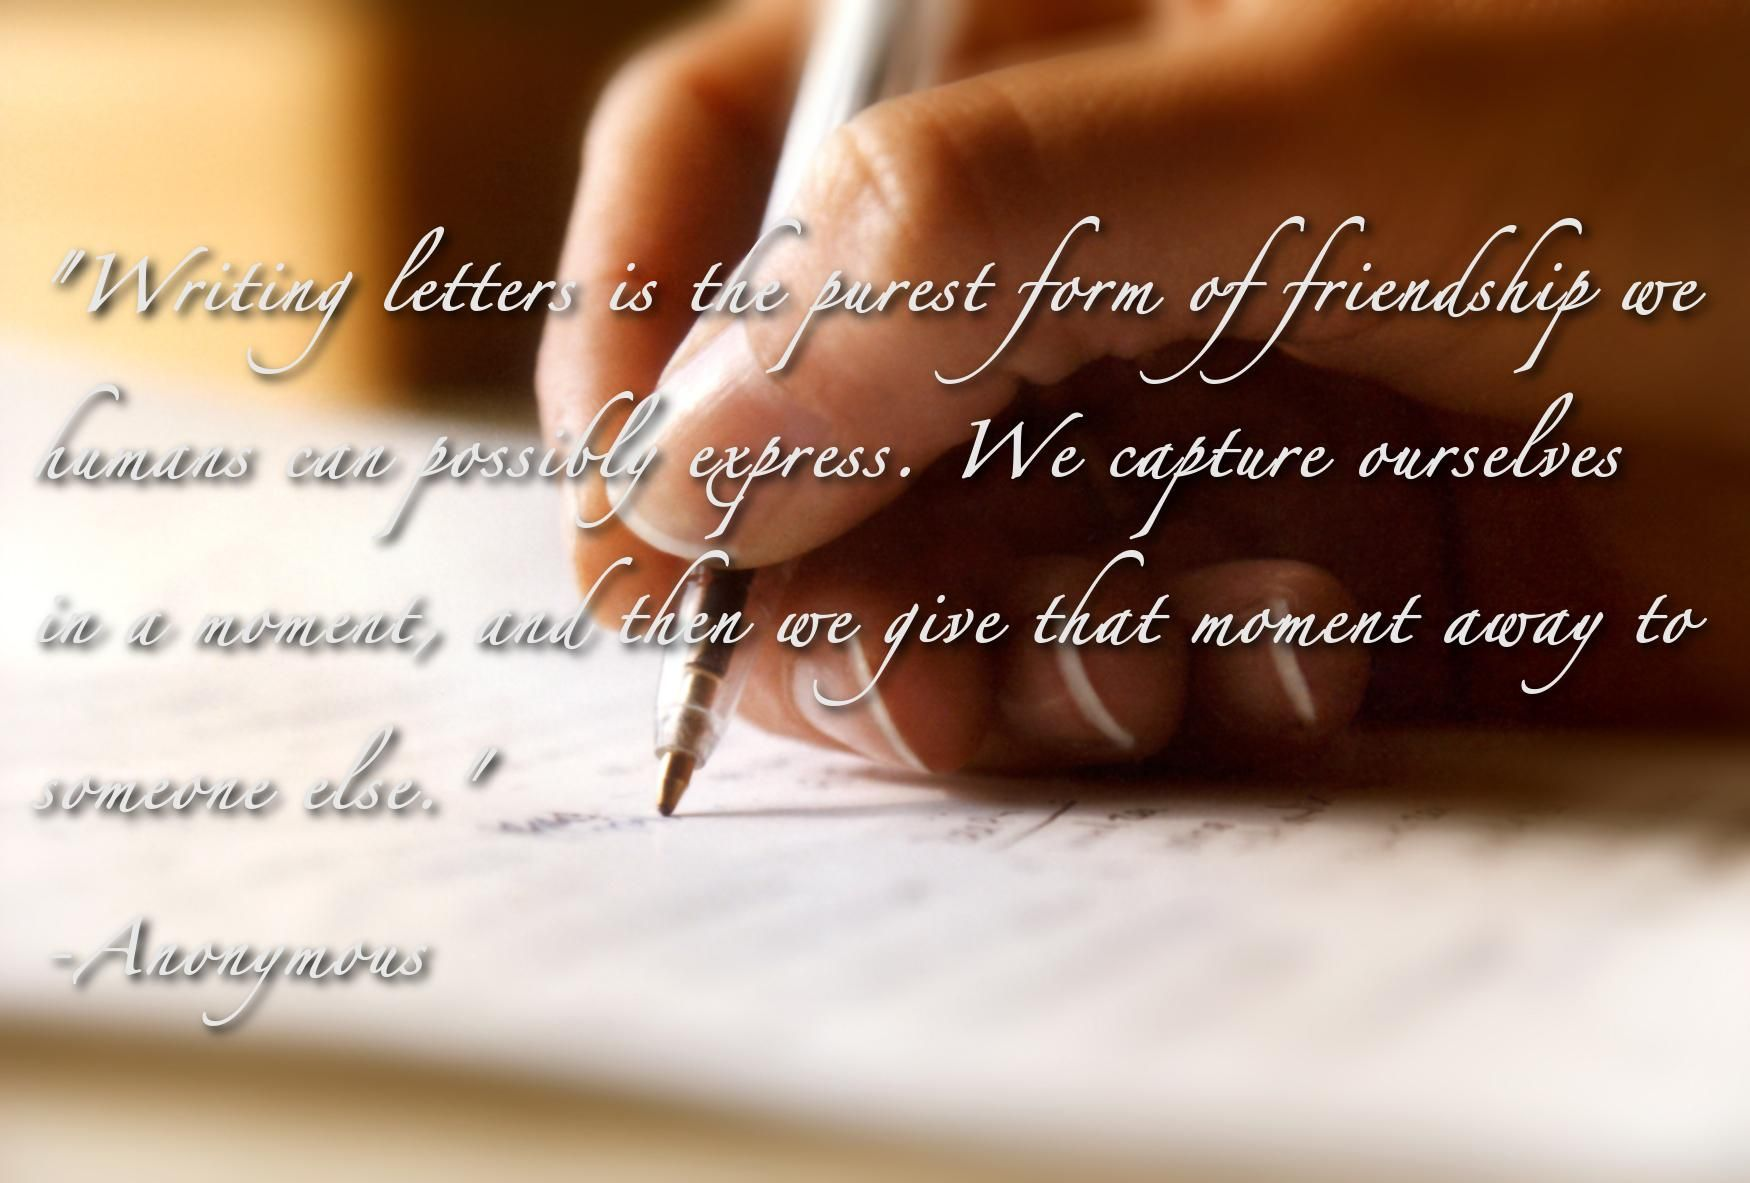 Writing letter is the purest form of friendship we humans can possibly express...  Like us on Facebook: https://www.facebook.com/aycarambagifts?ref=hl  #theartofwriting #aycarambabooks